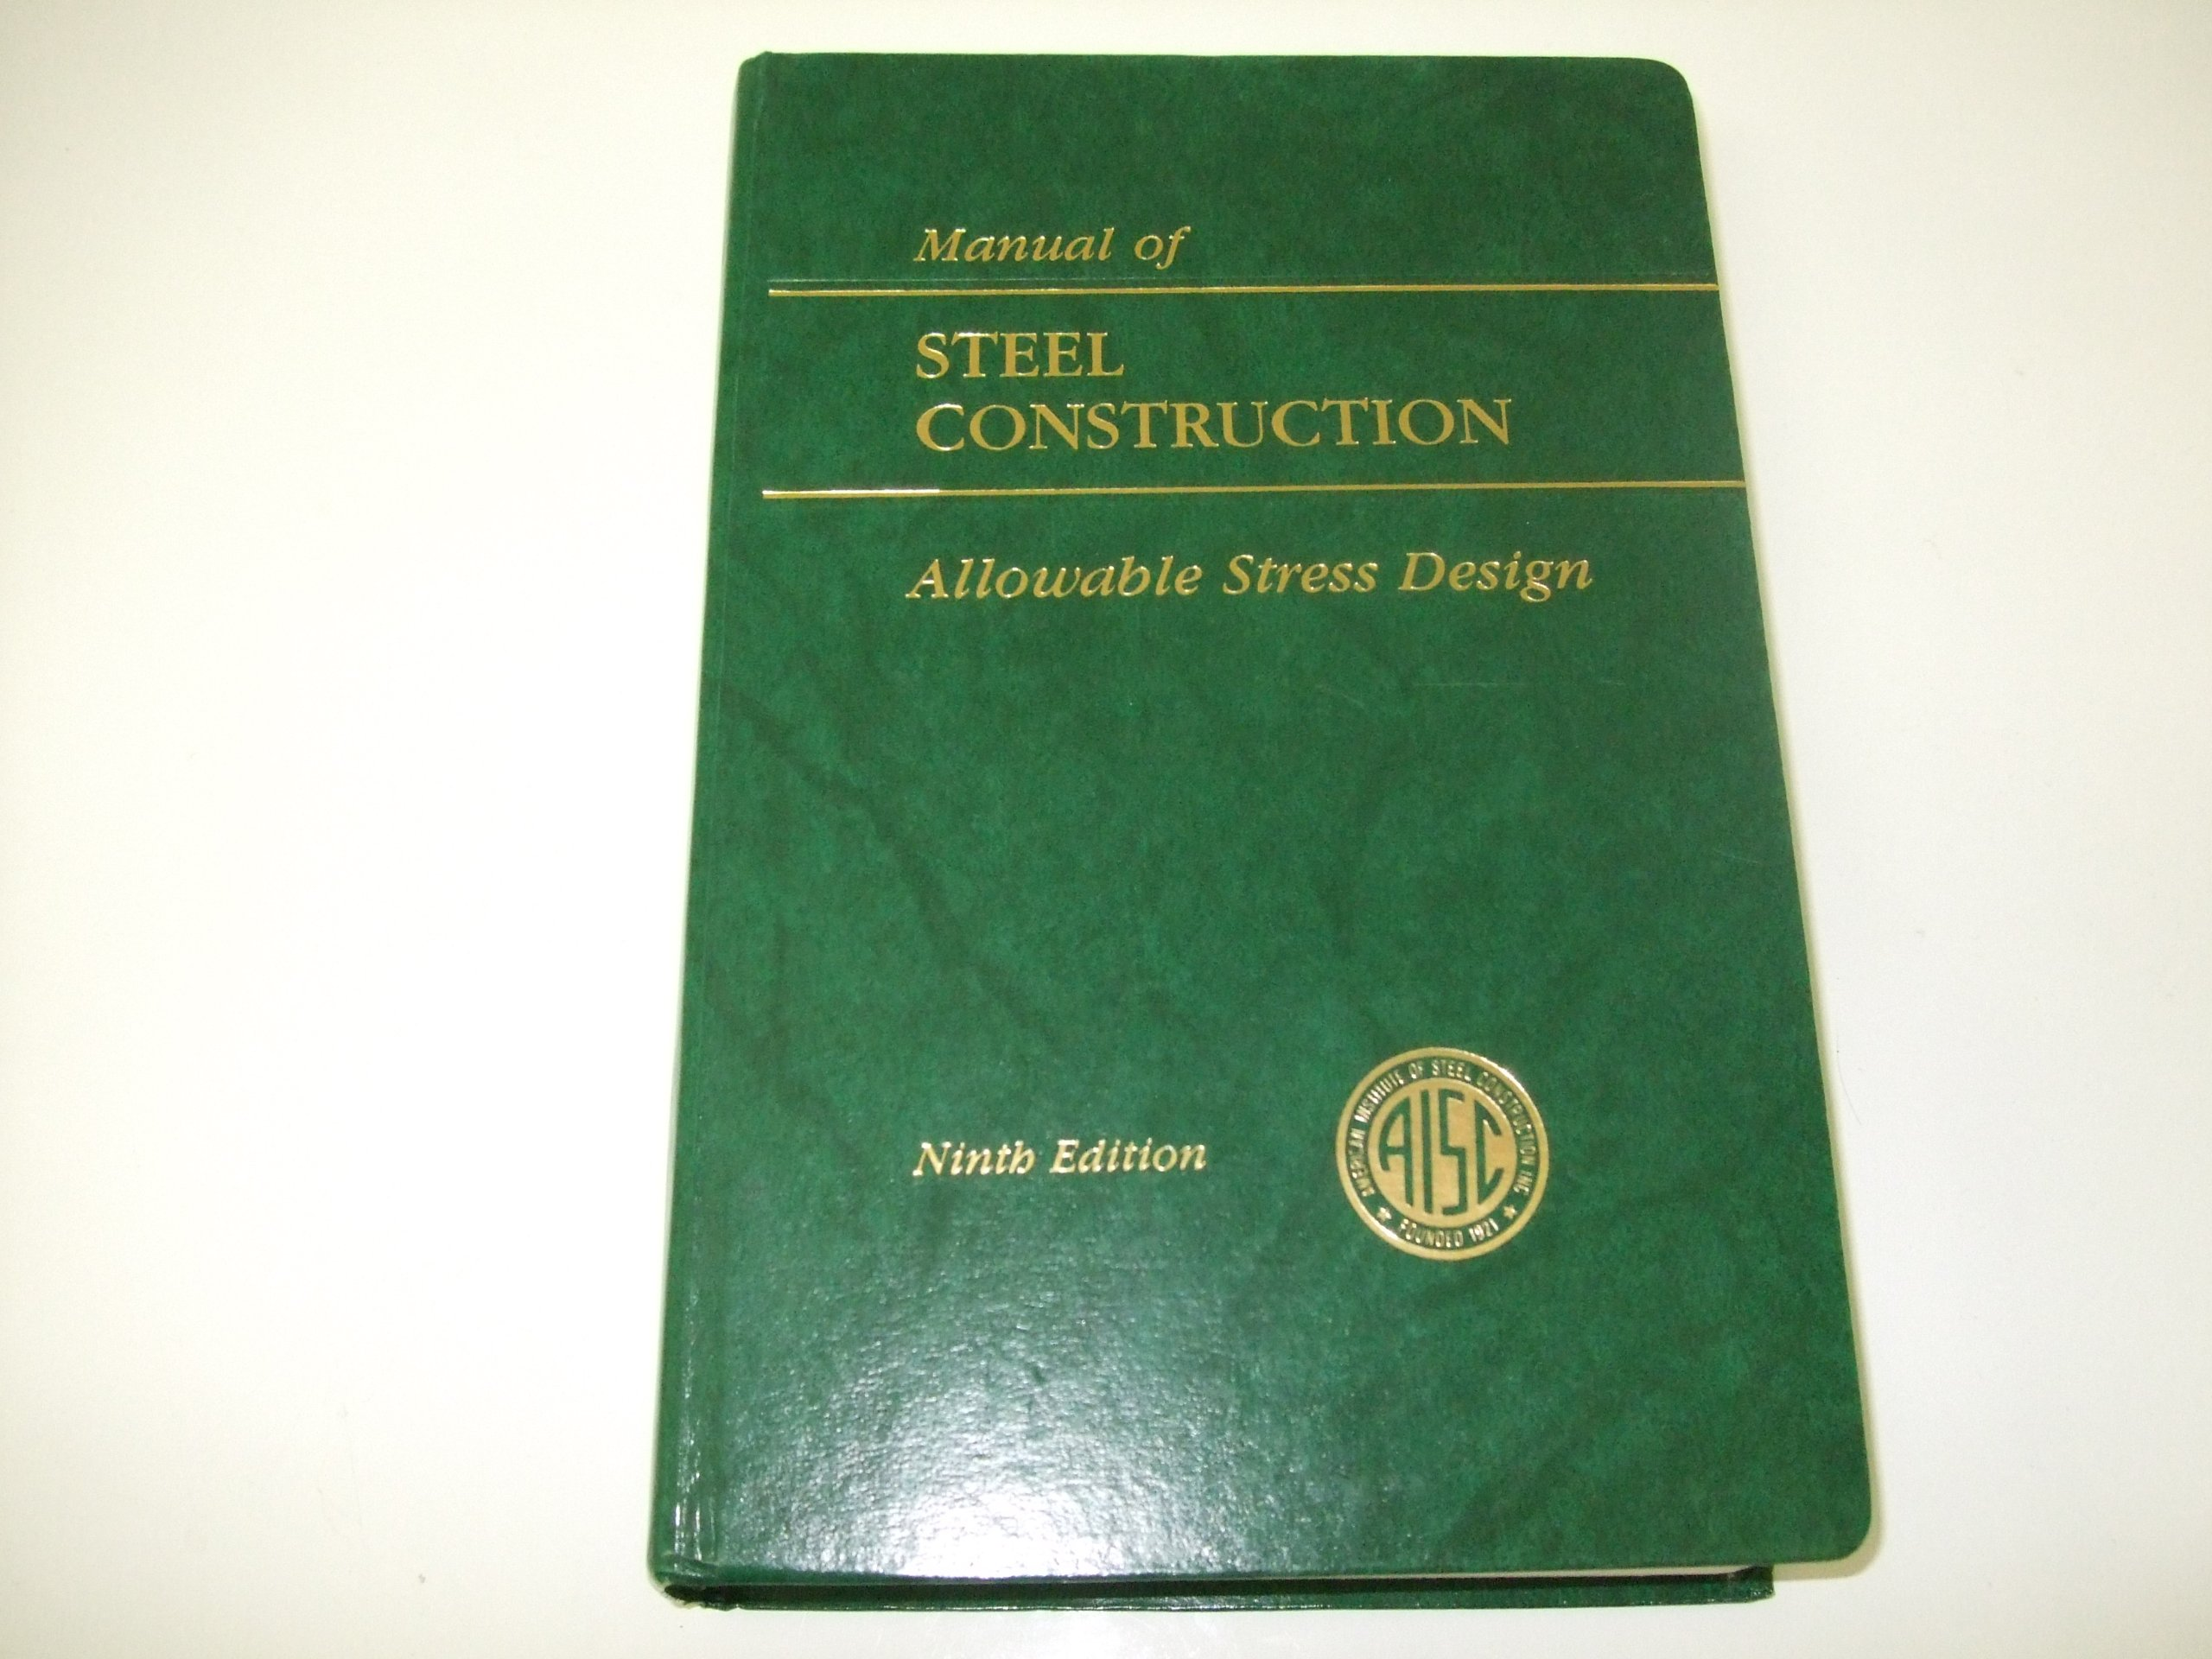 aisc manual of steel construction: allowable stress design (aisc 316-89) by aisc  manual committee published by amer inst of steel construction 9th (ninth)  edition (1989) hardcover: american institute of steel construction:  amazon.com:  amazon.com